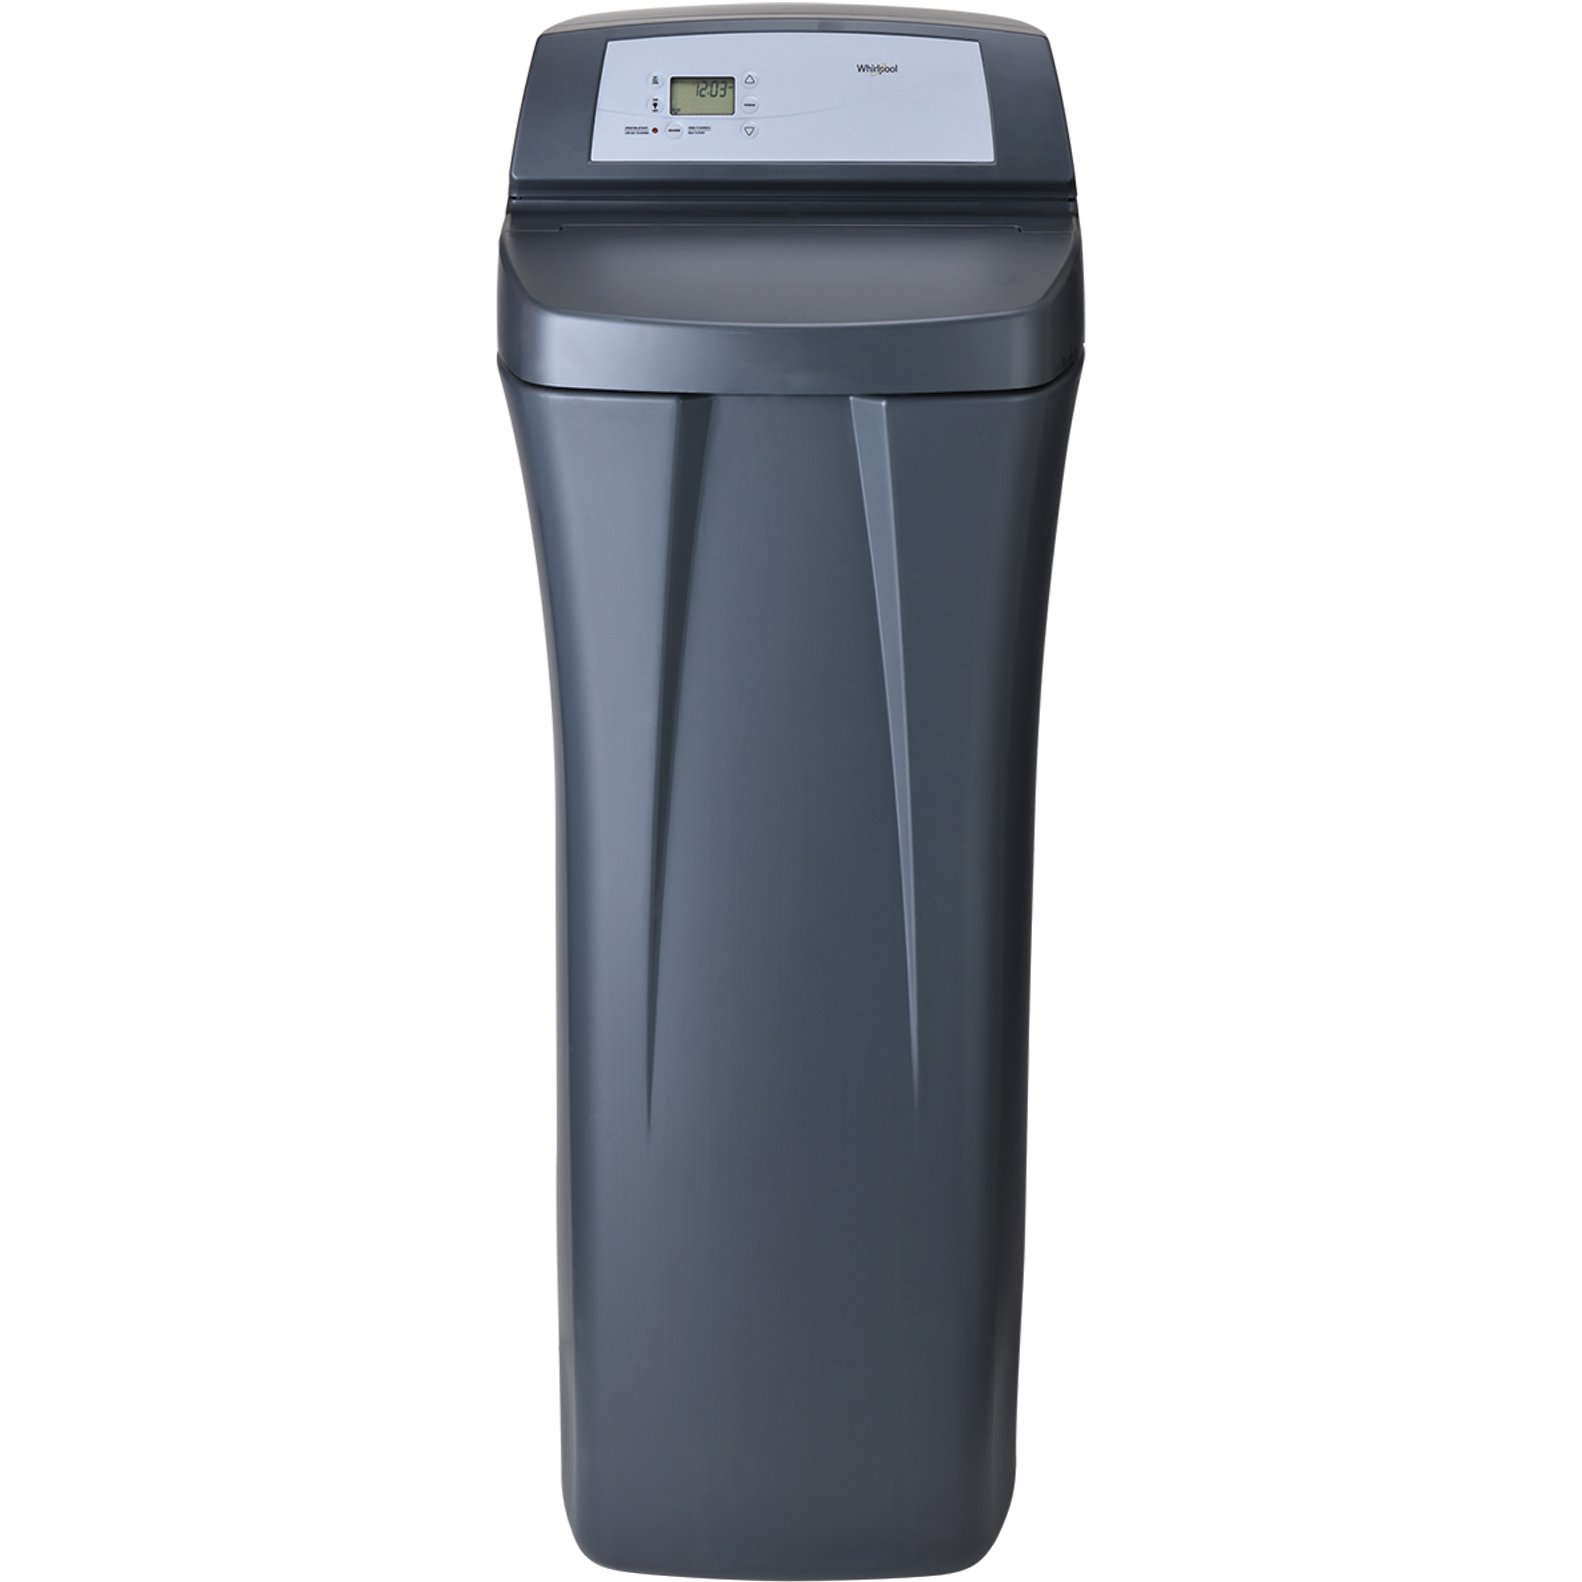 Whirlpool Water Softener Whes48 Rc Willey Furniture Store